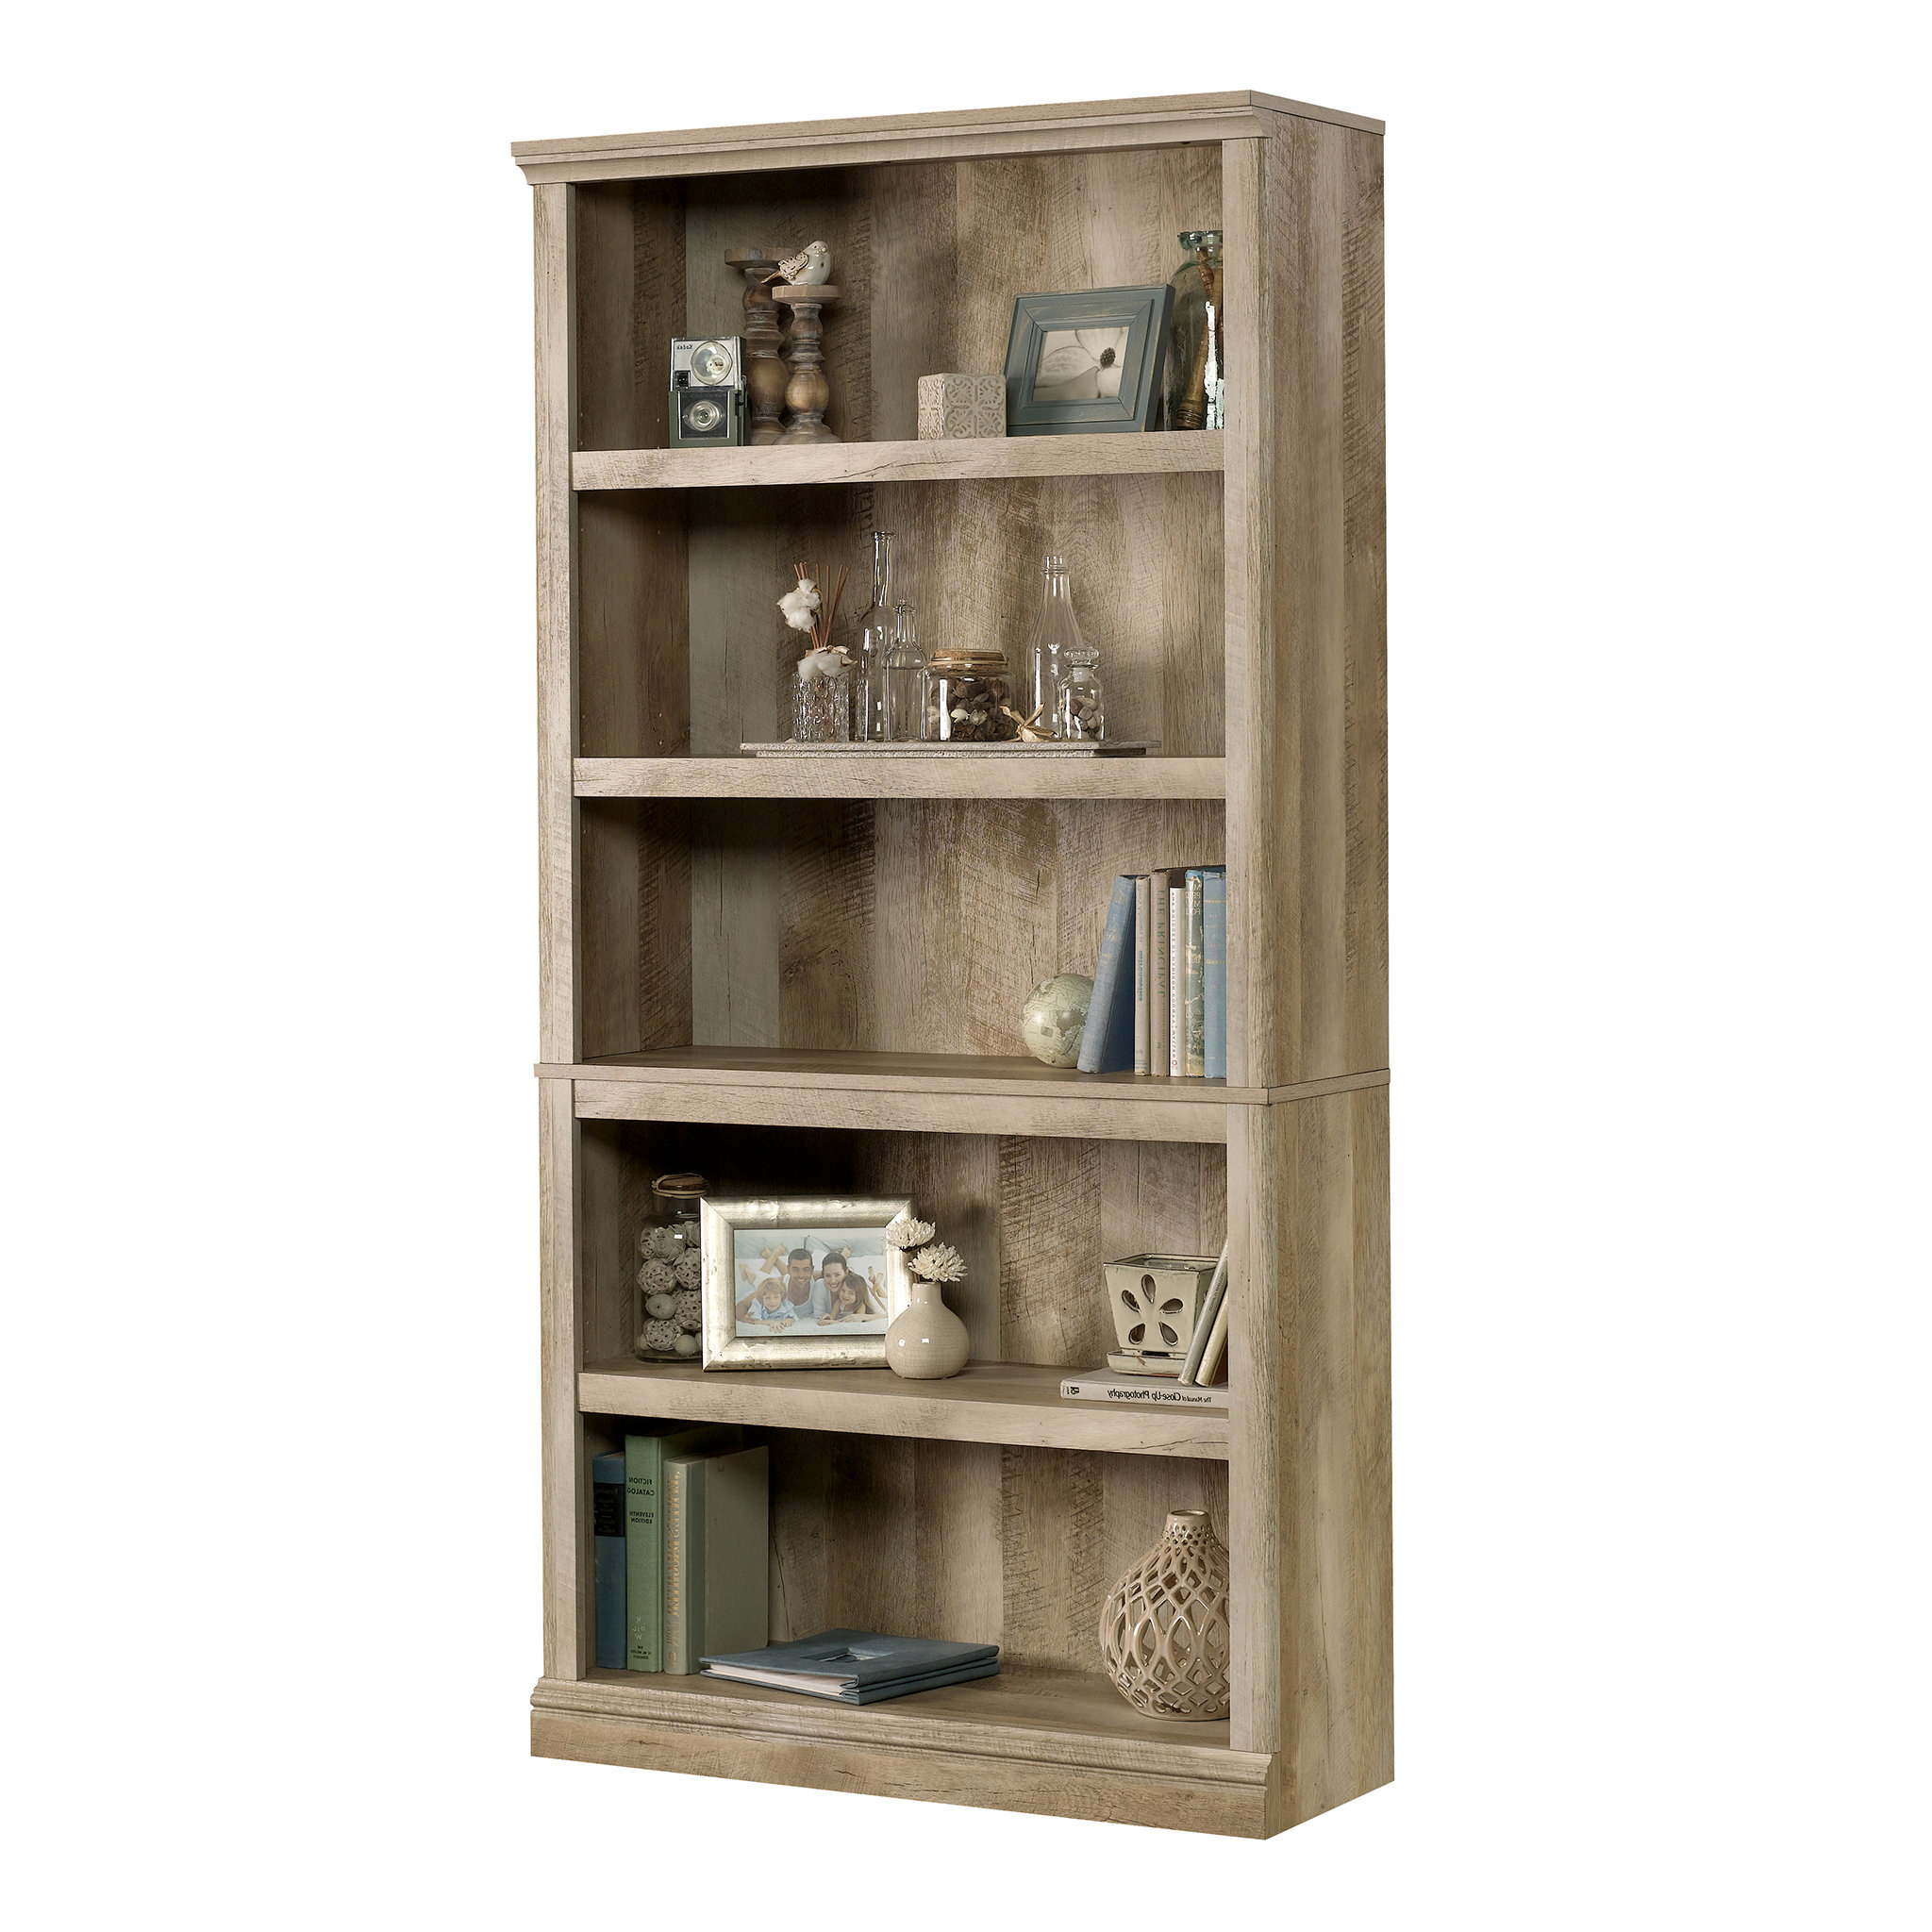 Abigail Standard Bookcase Within Most Popular Abigail Standard Bookcases (Gallery 1 of 20)